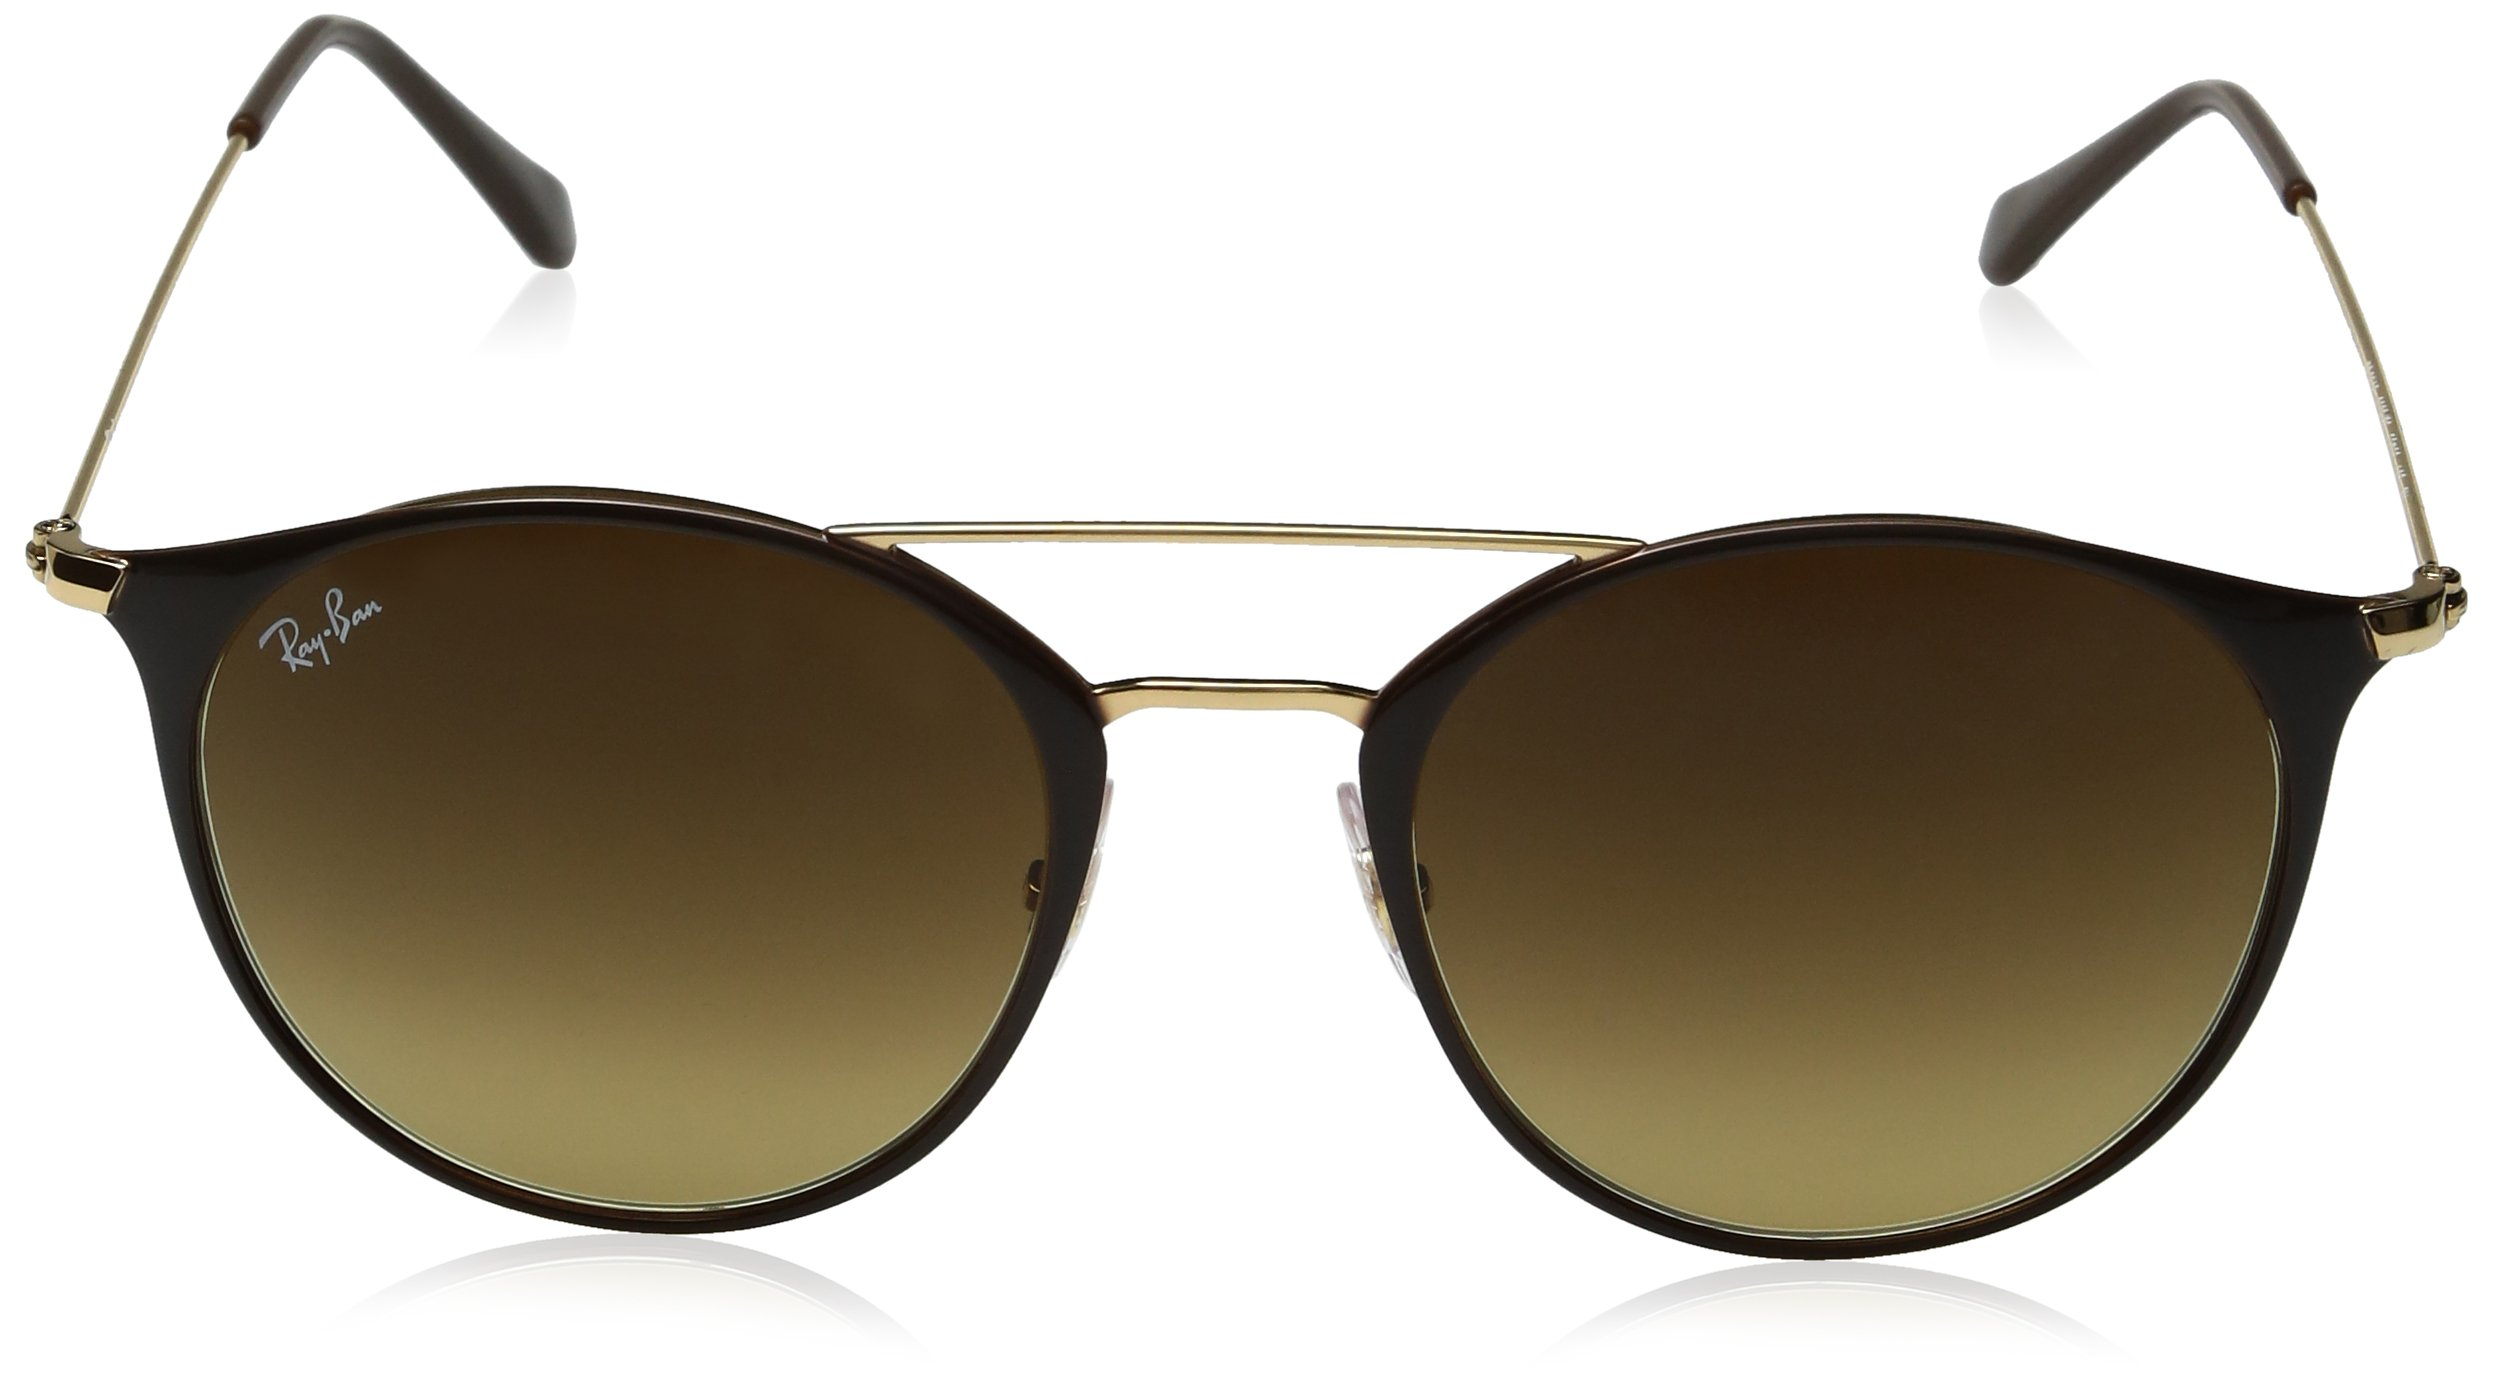 Ray-Ban Steel Unisex Round Sunglasses, Gold Top Brown, 52 mm by Ray-Ban (Image #2)